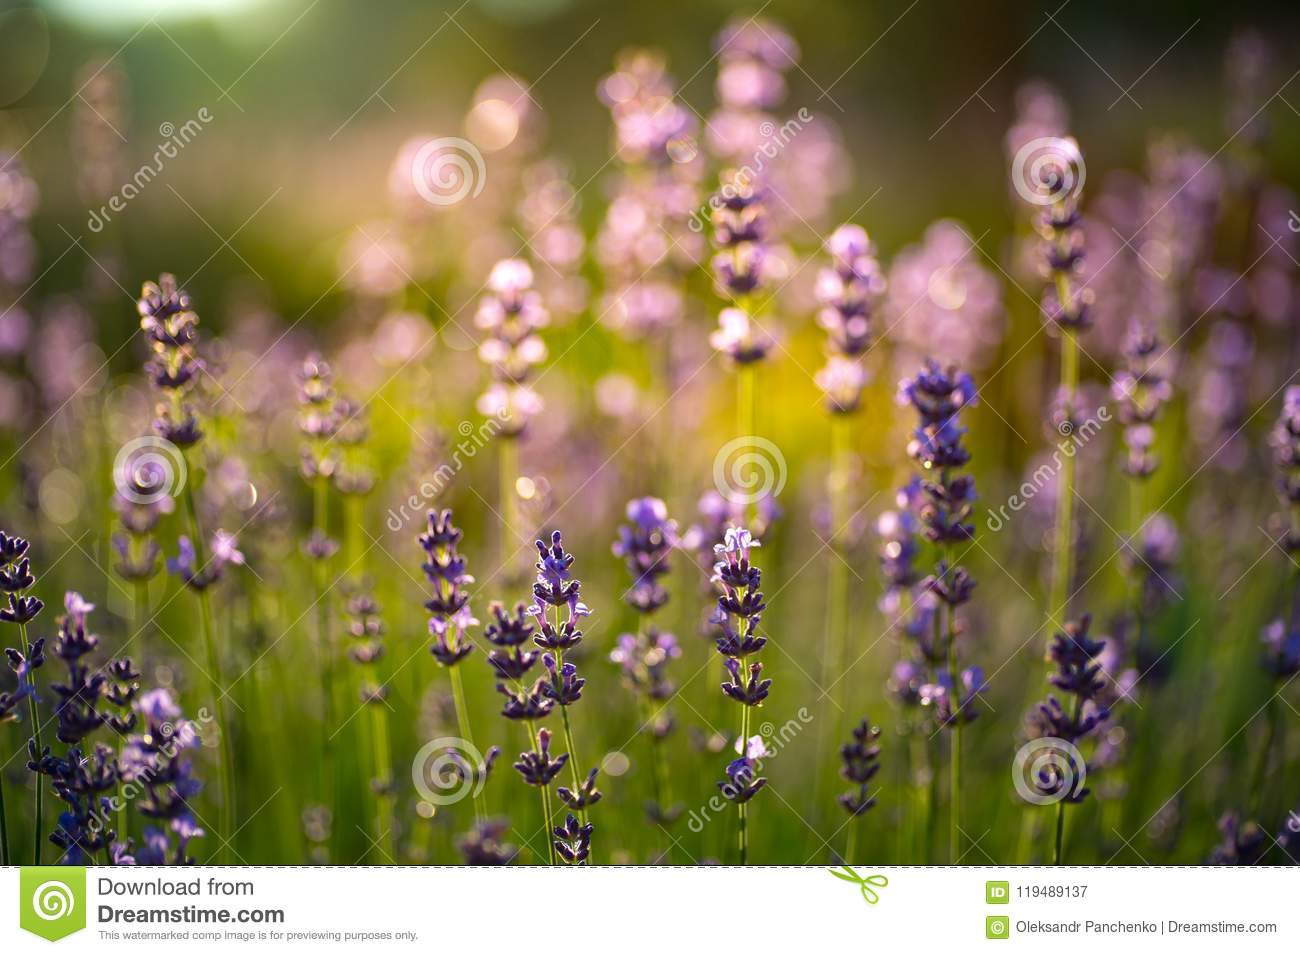 Closeup photo of beautiful gentle lavender flower field, abstract purple floral background, aromatic plant, beauty of summer